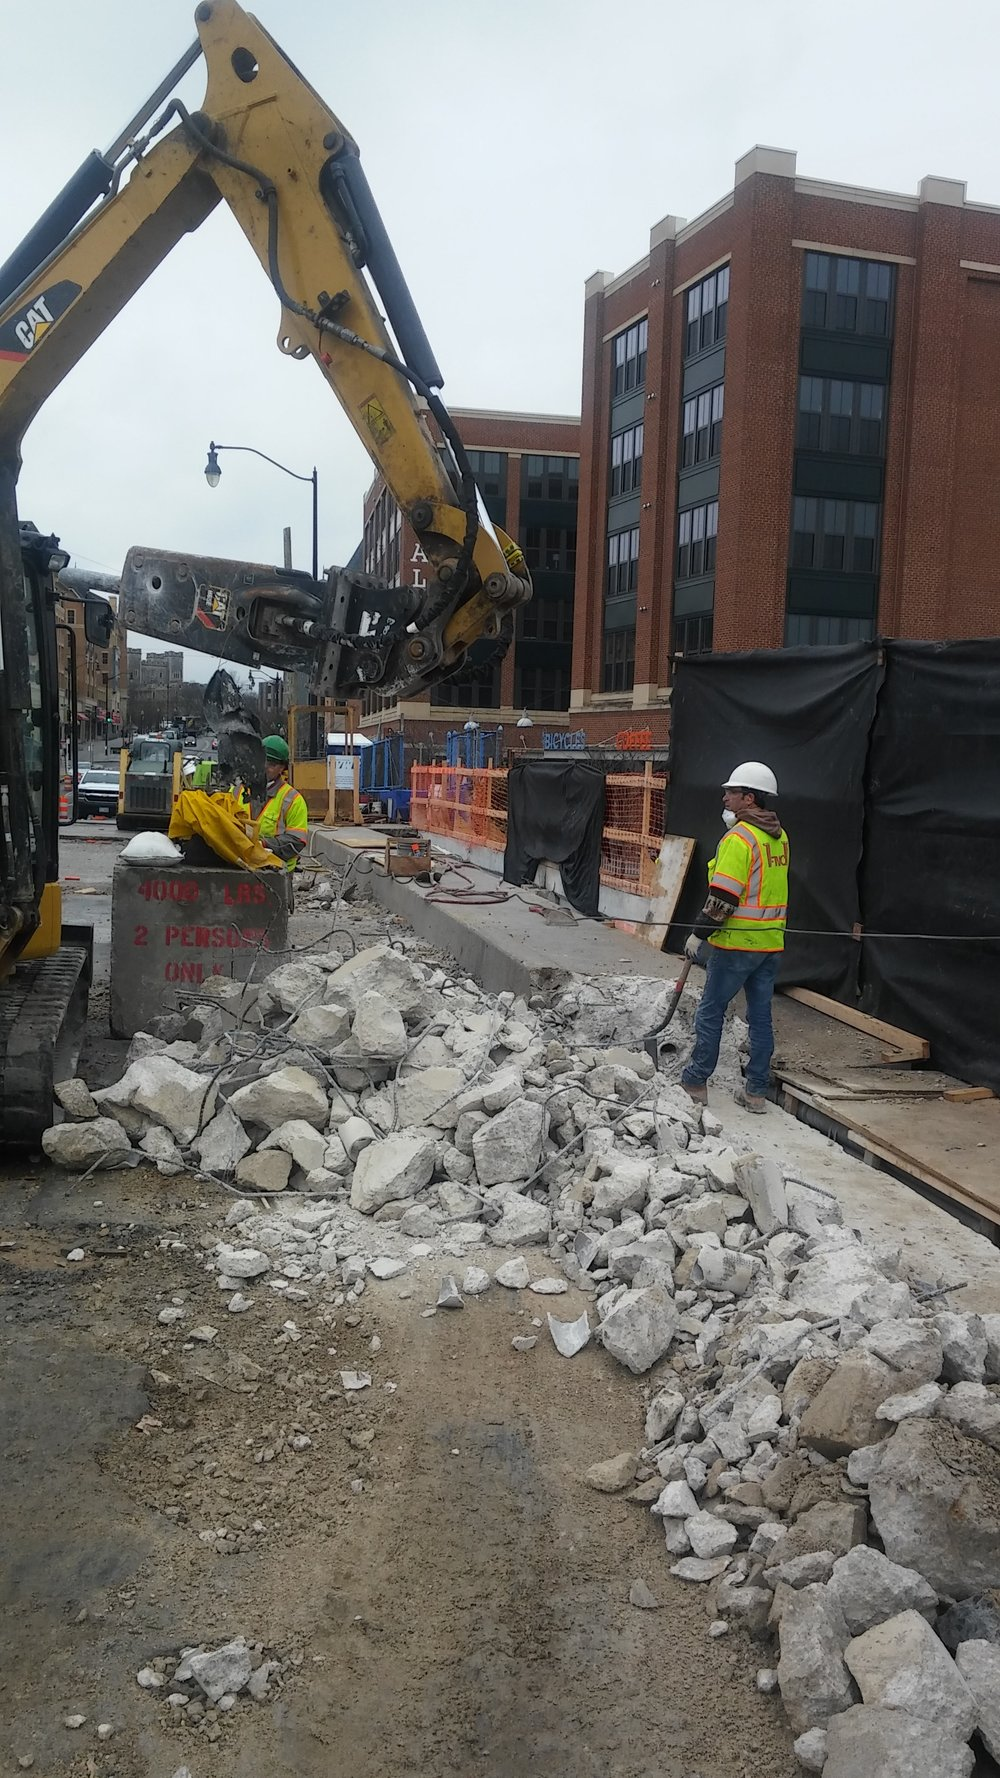 North sidewalk demolition